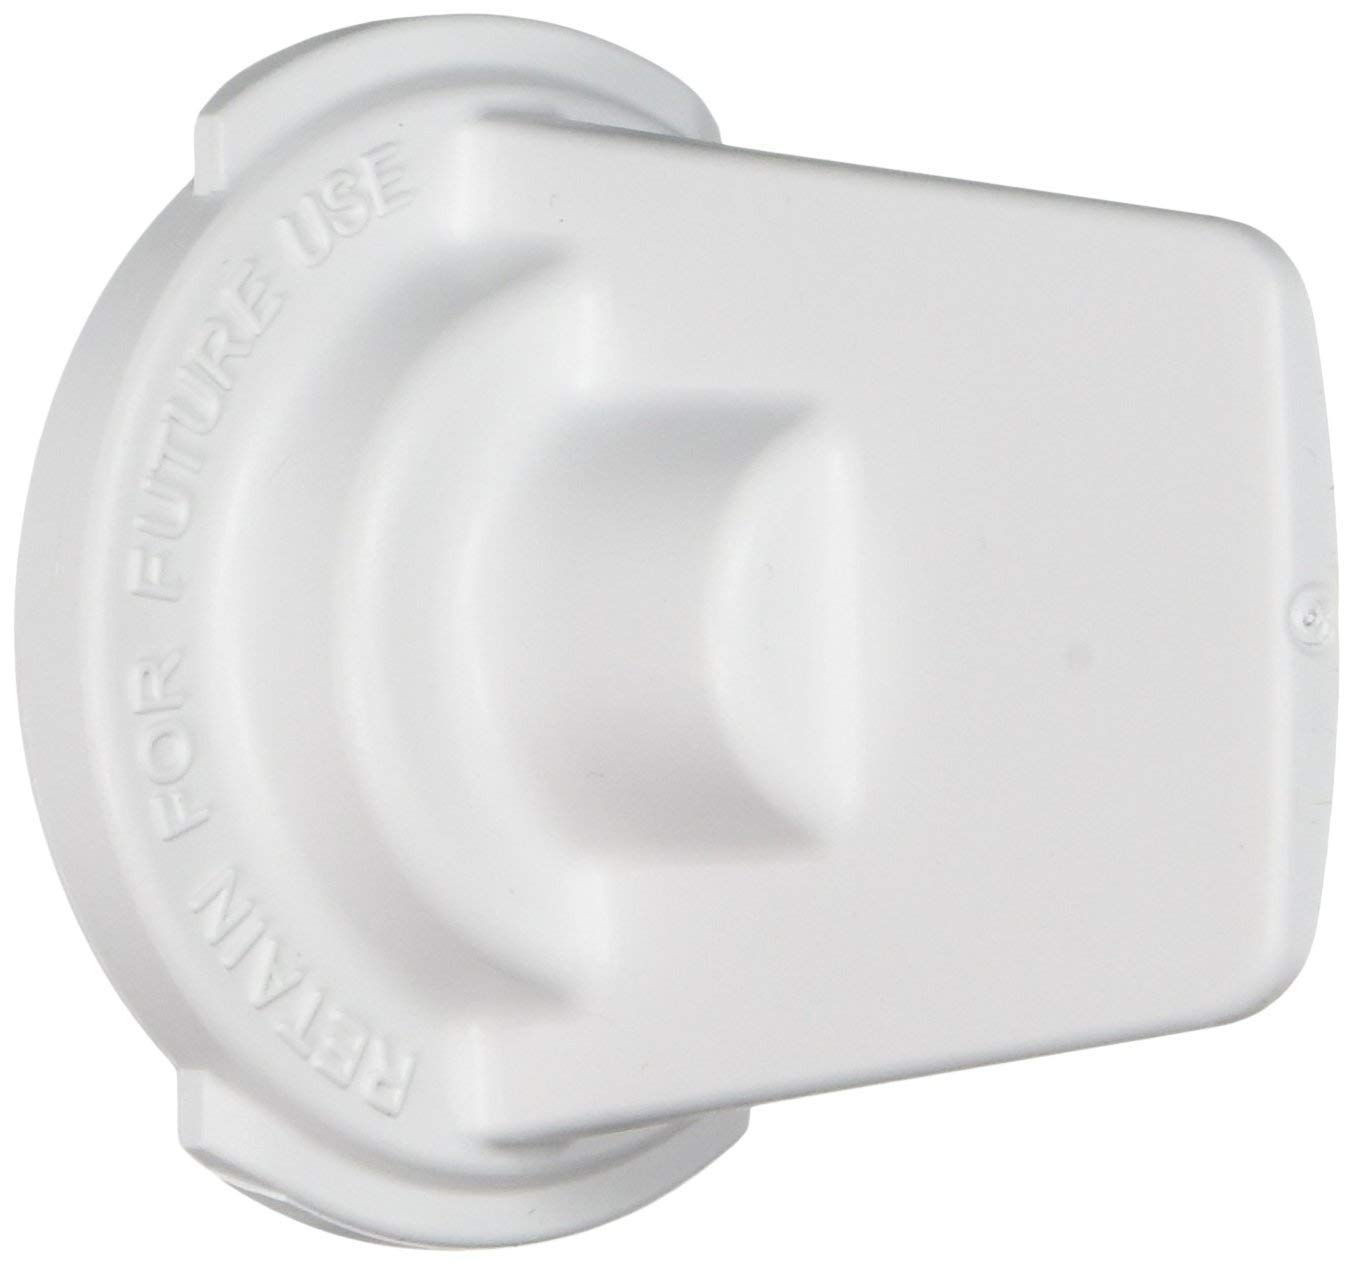 Lifetime Appliance WR02X11705 Filter Bypass Cap Compatible with General Electric (GE) Refrigerator - WR17X22070